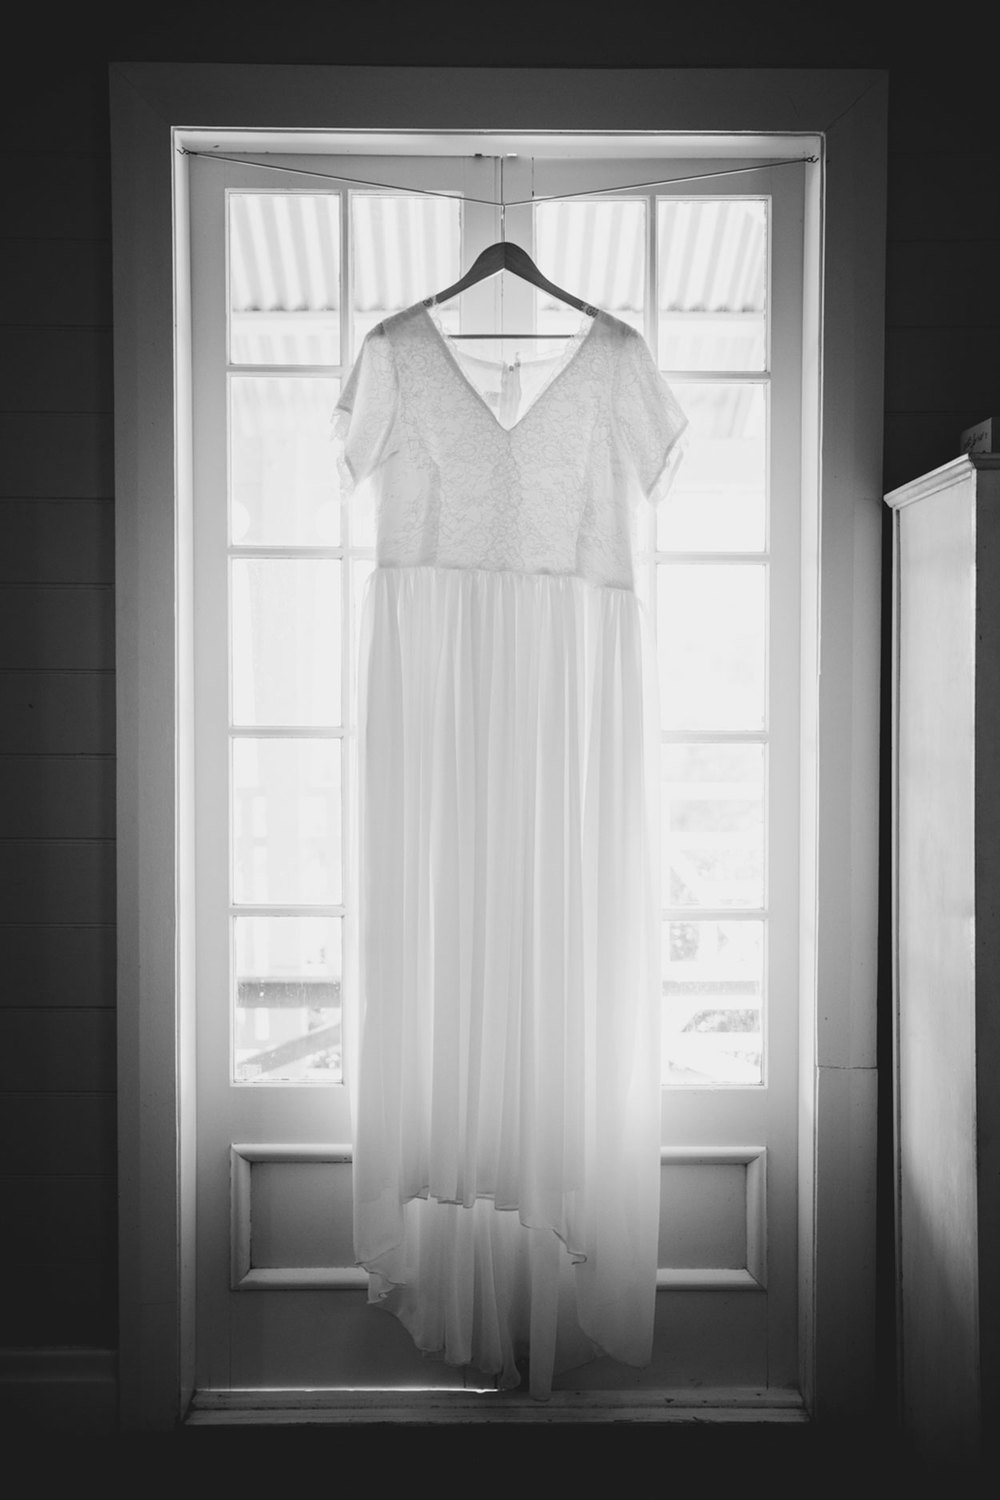 Queensland, Australian Wedding Dress - Noosa, Sunshine Coast Destination Wedding Photographer